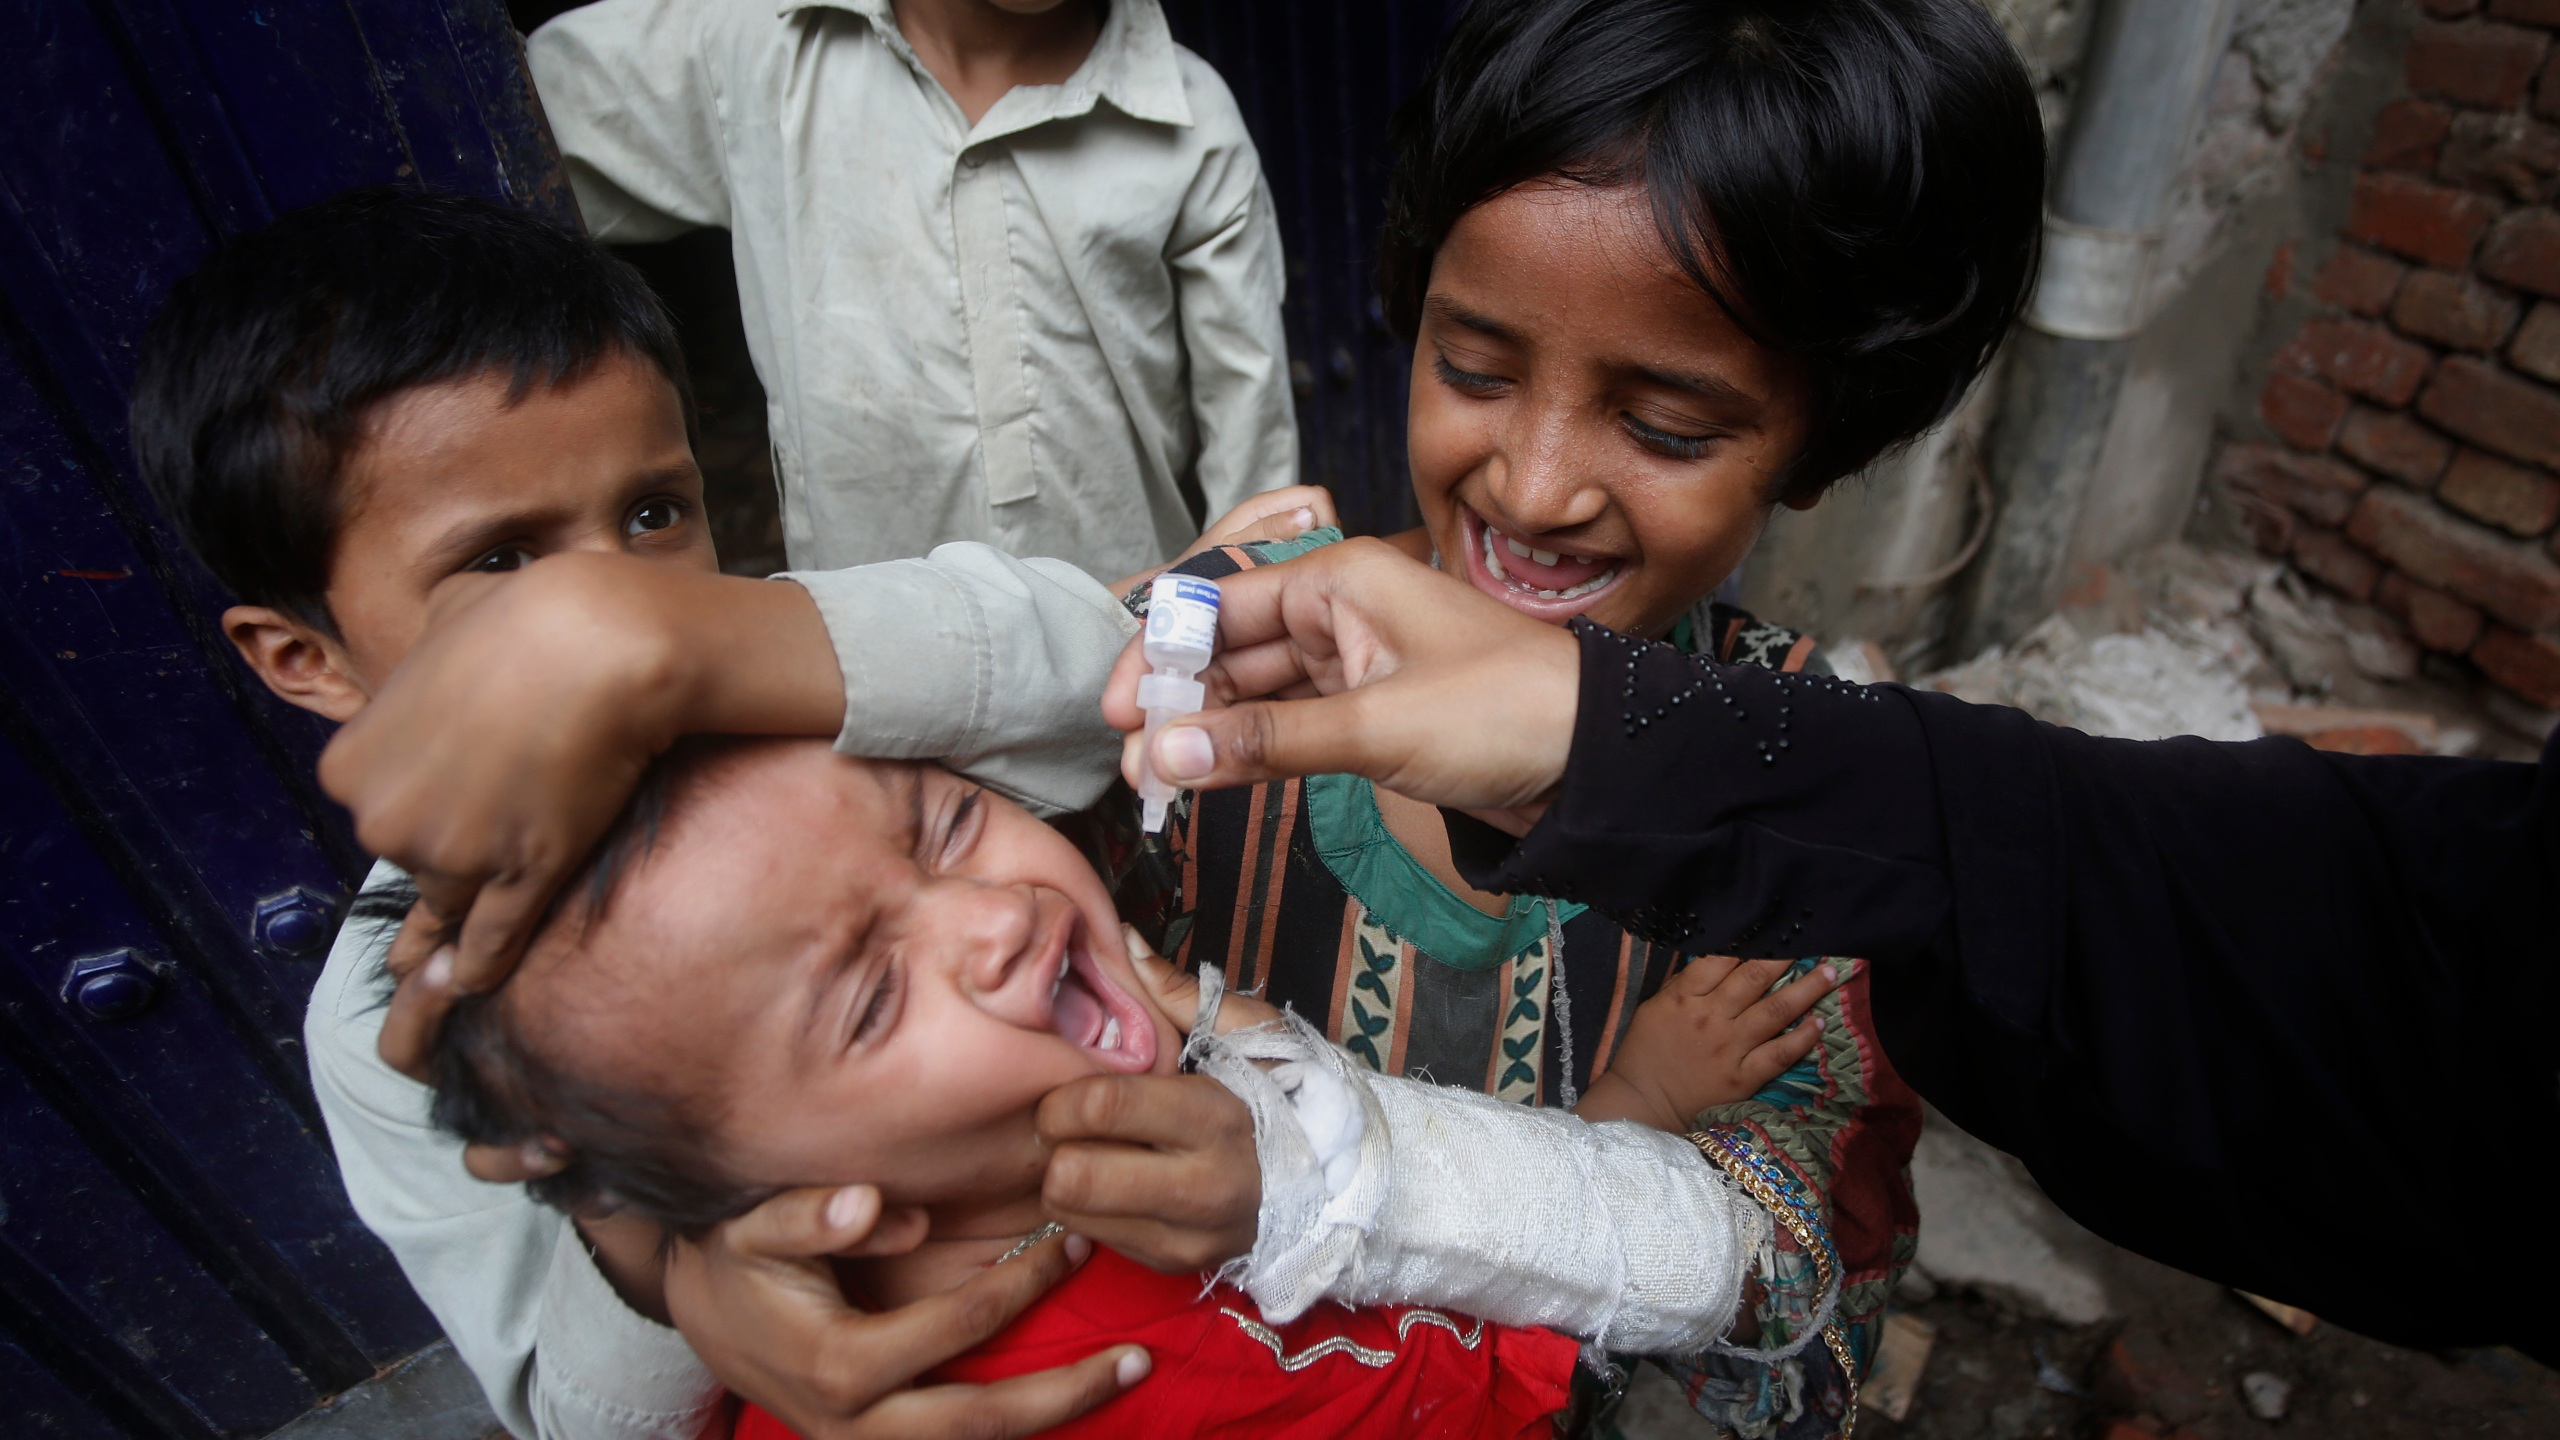 Pakistan wraps up anti-polio drive amid surge in cases – WKRG News 5